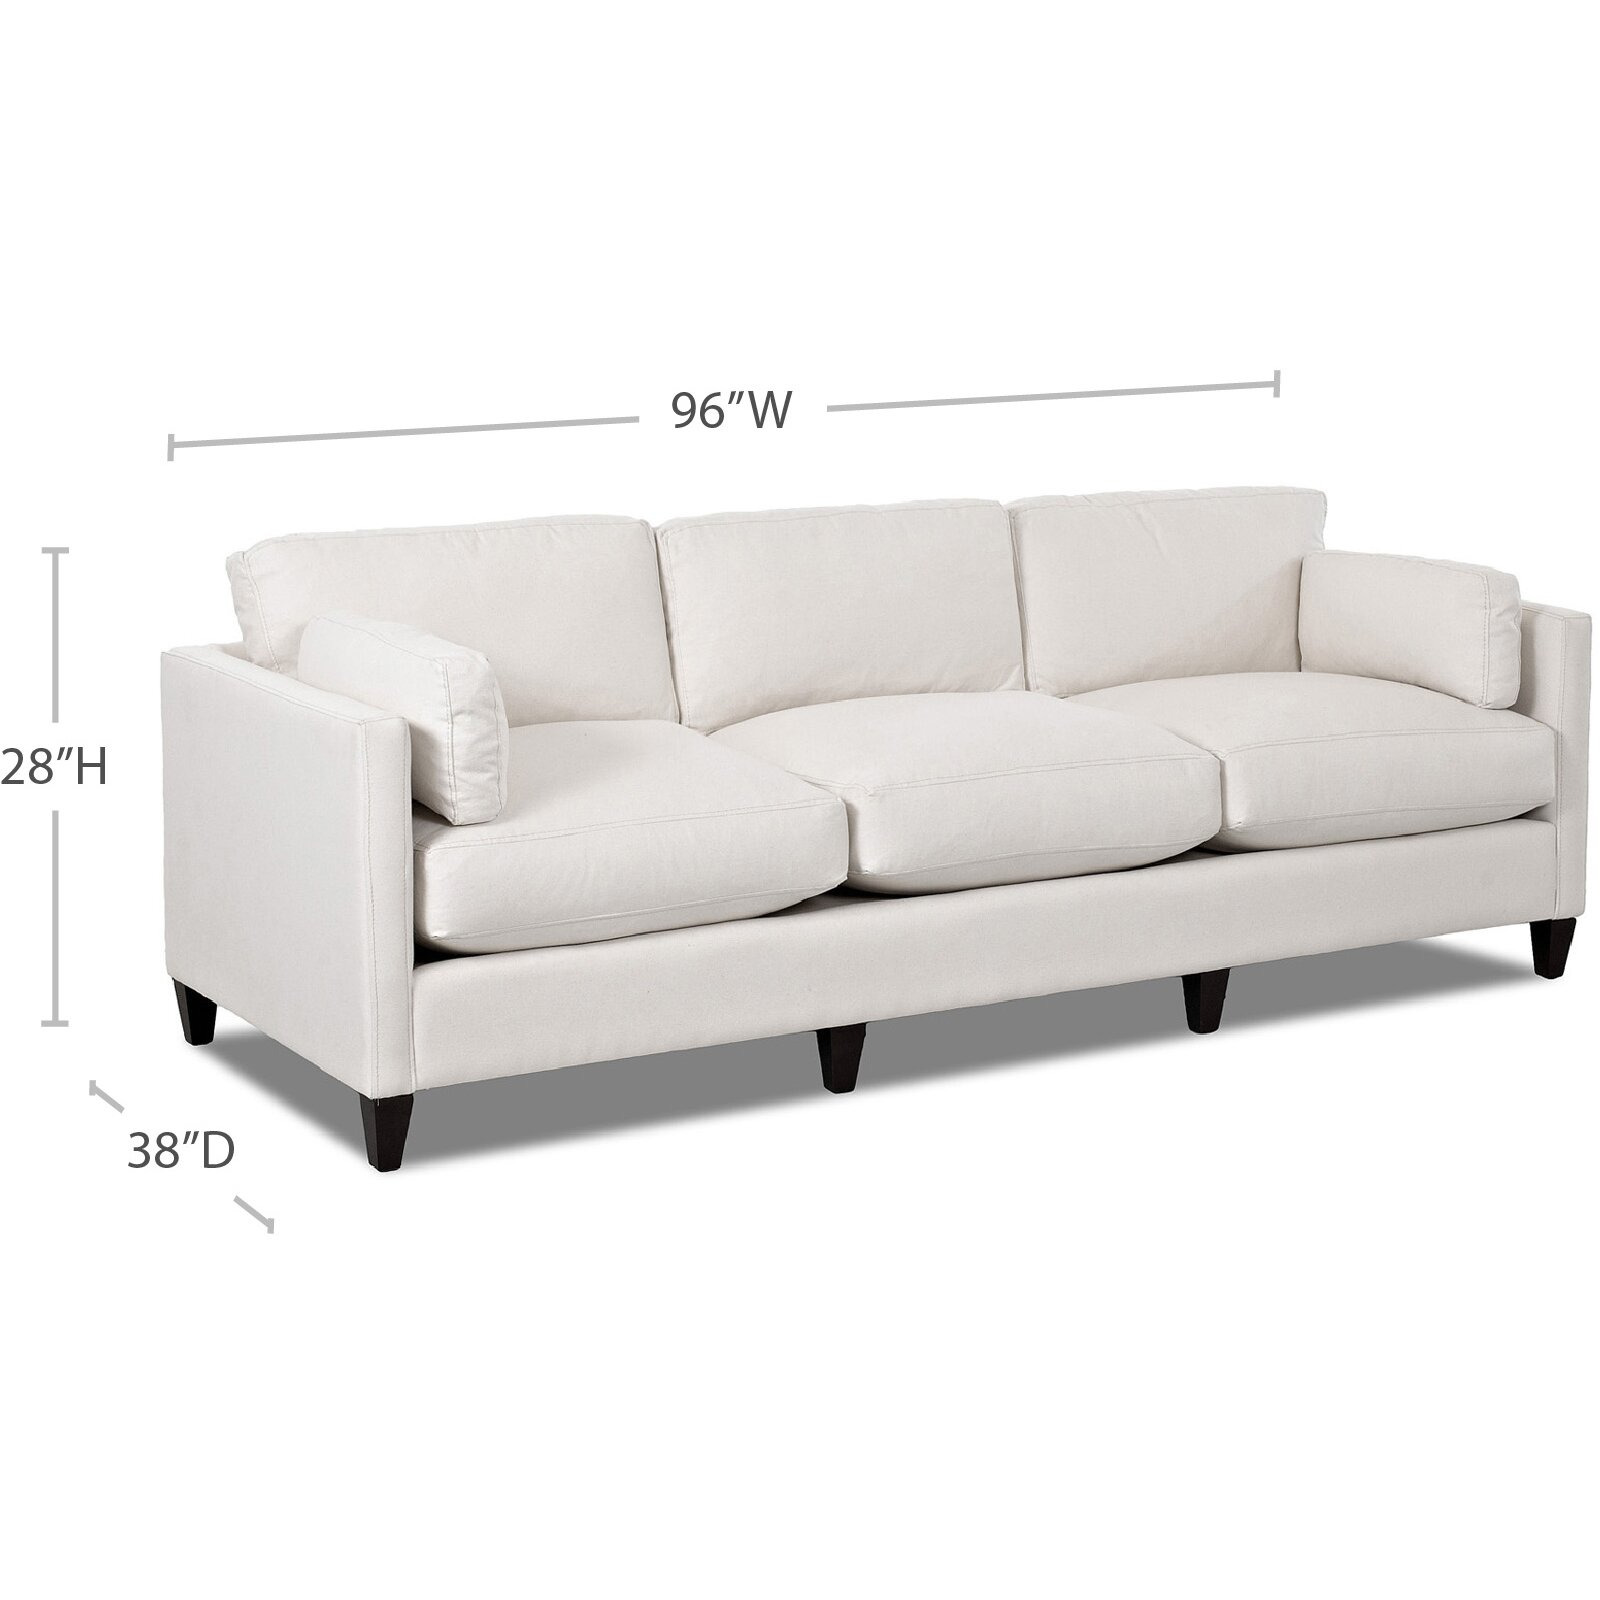 Wayfair Com Sales: Wayfair Custom Upholstery Caroline Sofa & Reviews